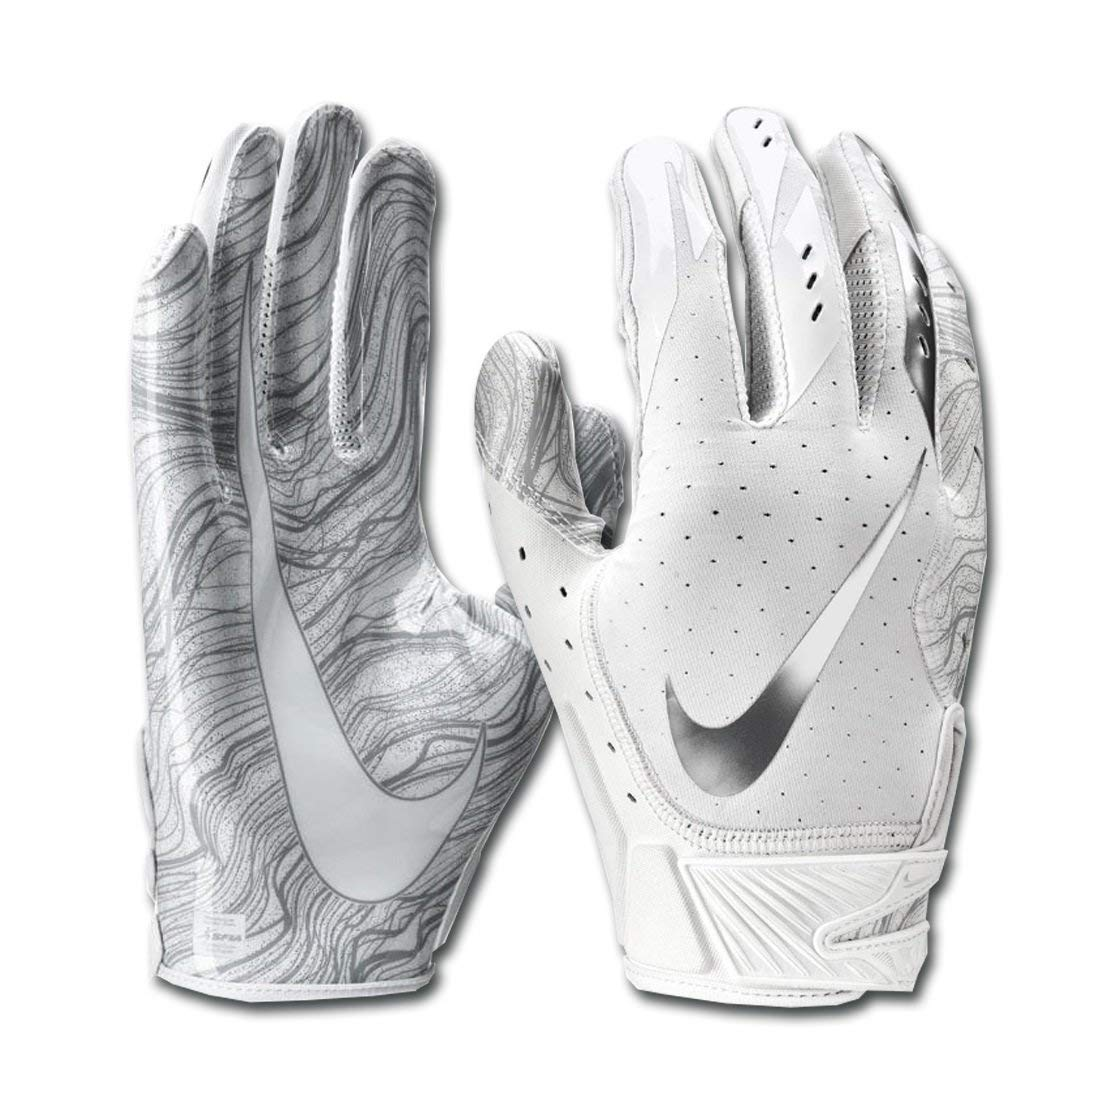 Nike Men's Vapor Jet 5.0 Football Gloves White/Chrome Size Small